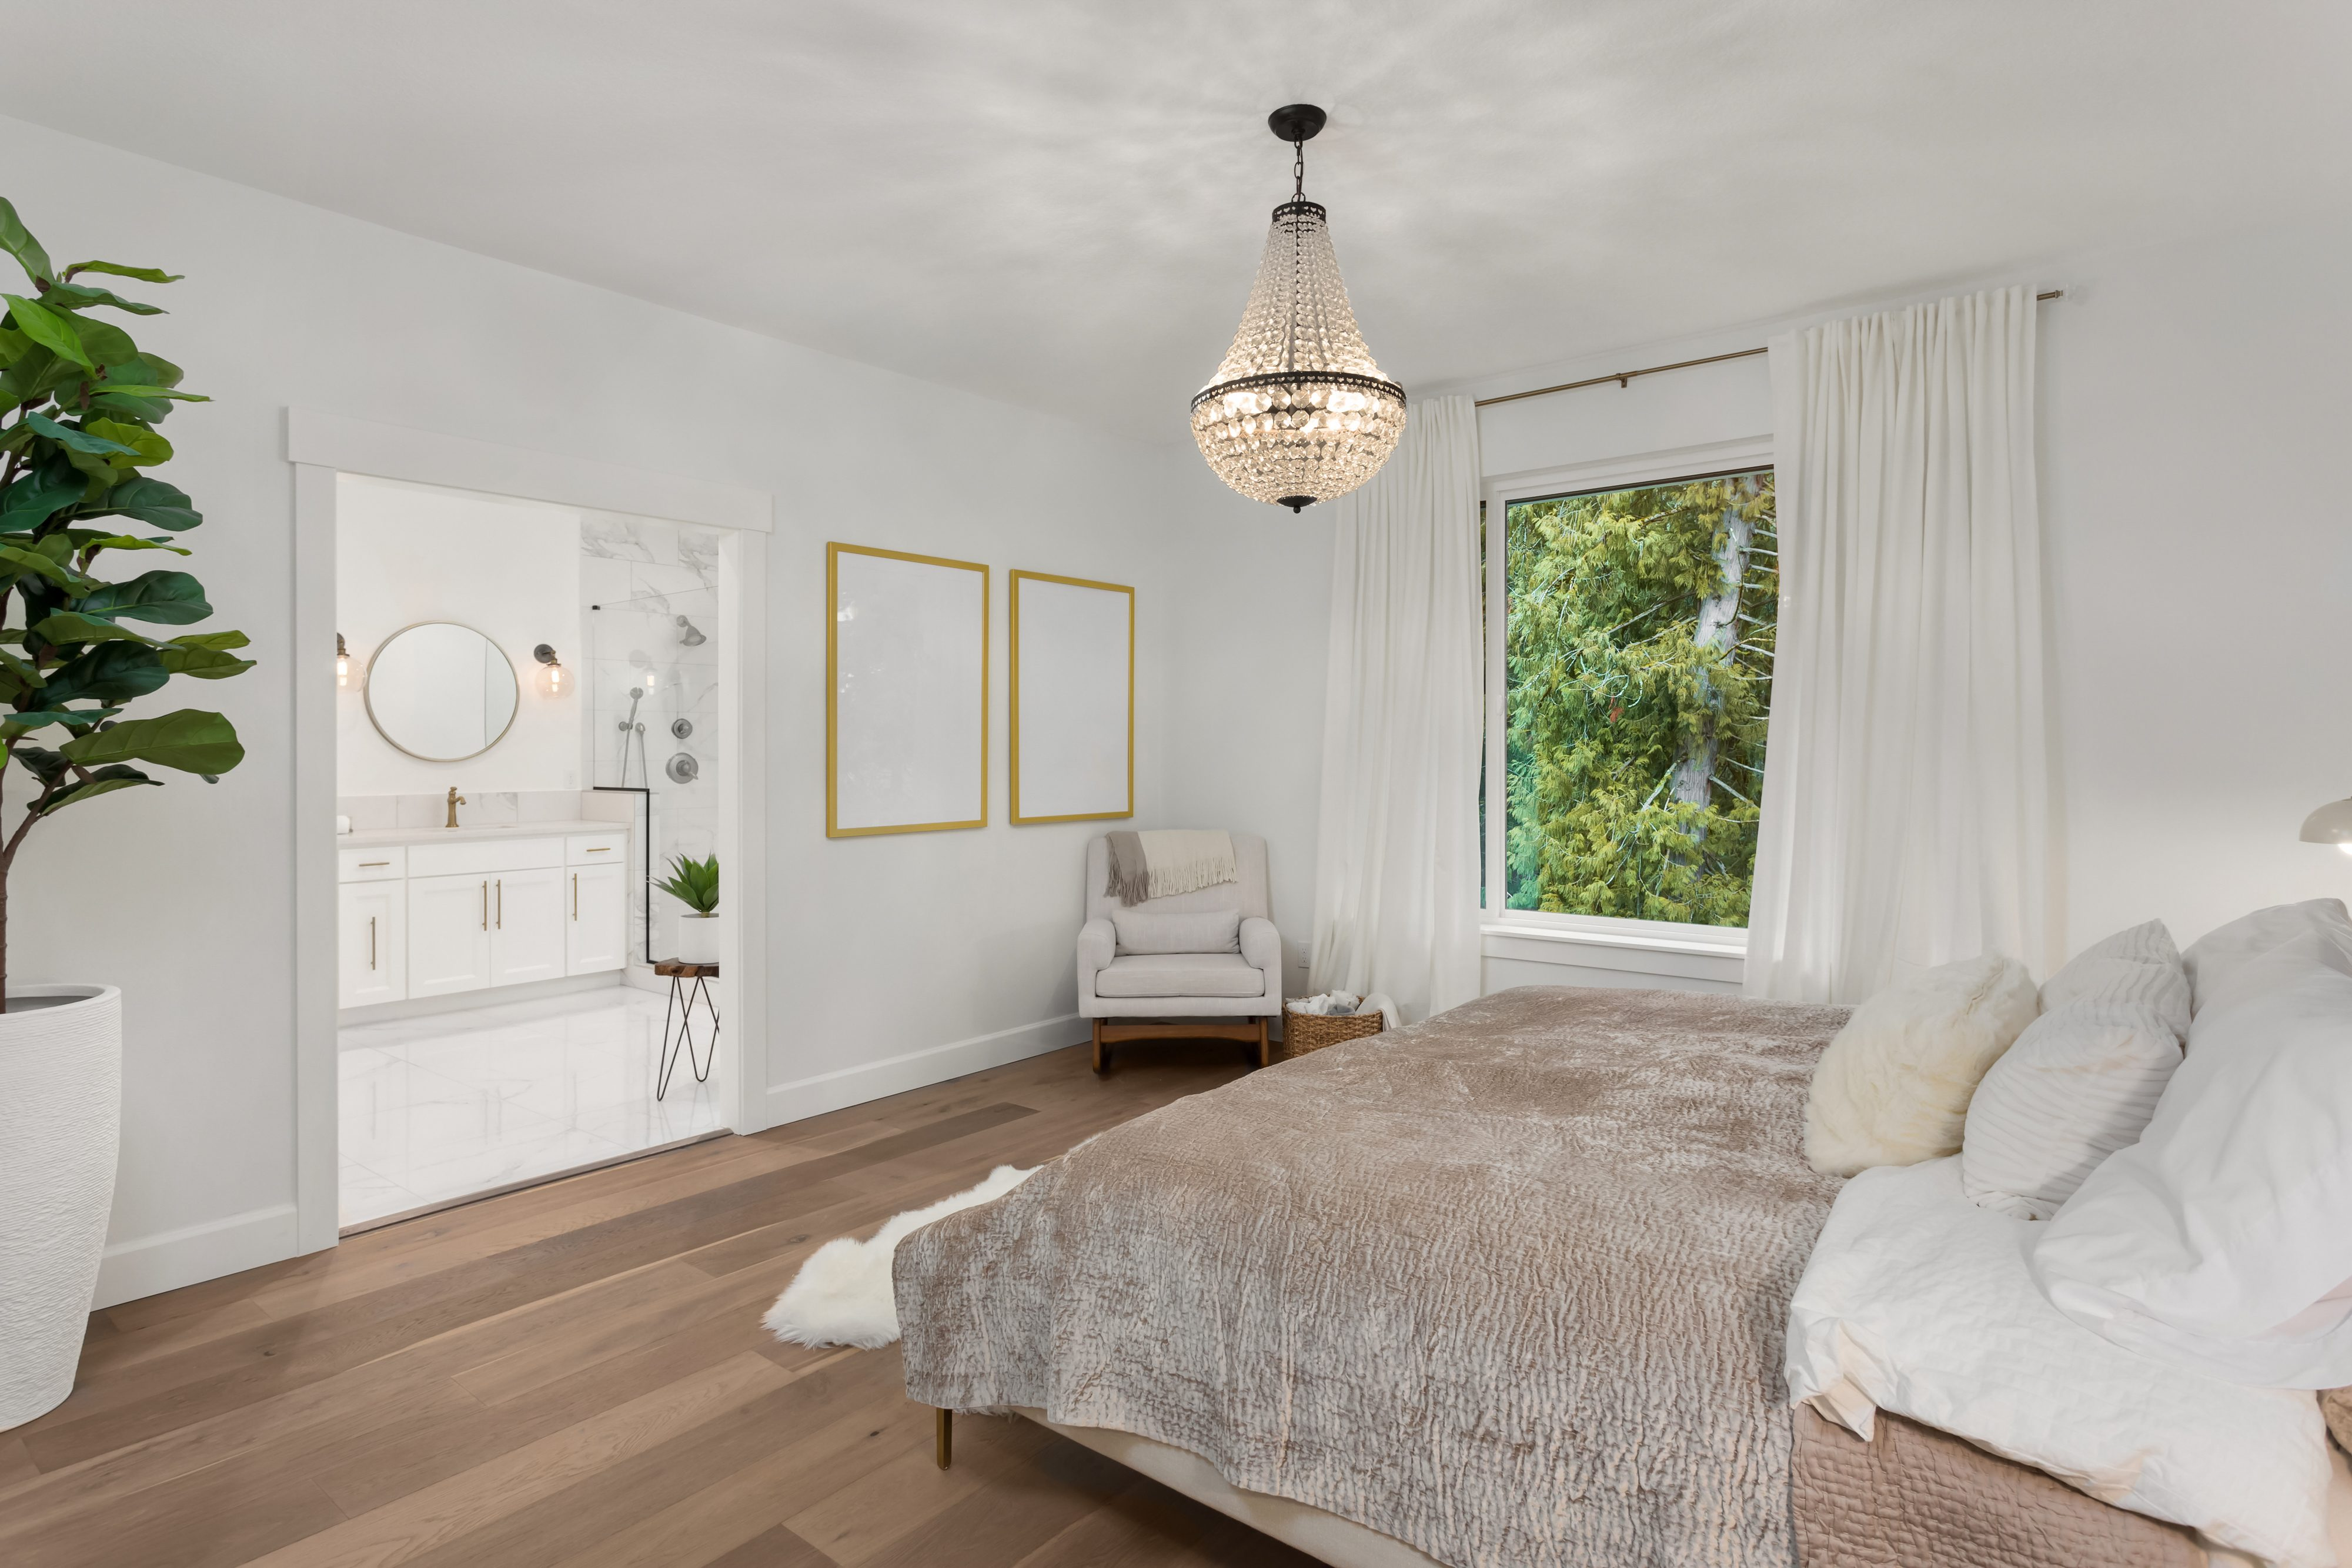 Beautiful Master Bedroom in New Luxury Home. Features Elegant Pendant Light, Hardwood Floors, and View of Ensuite Master Bathroom